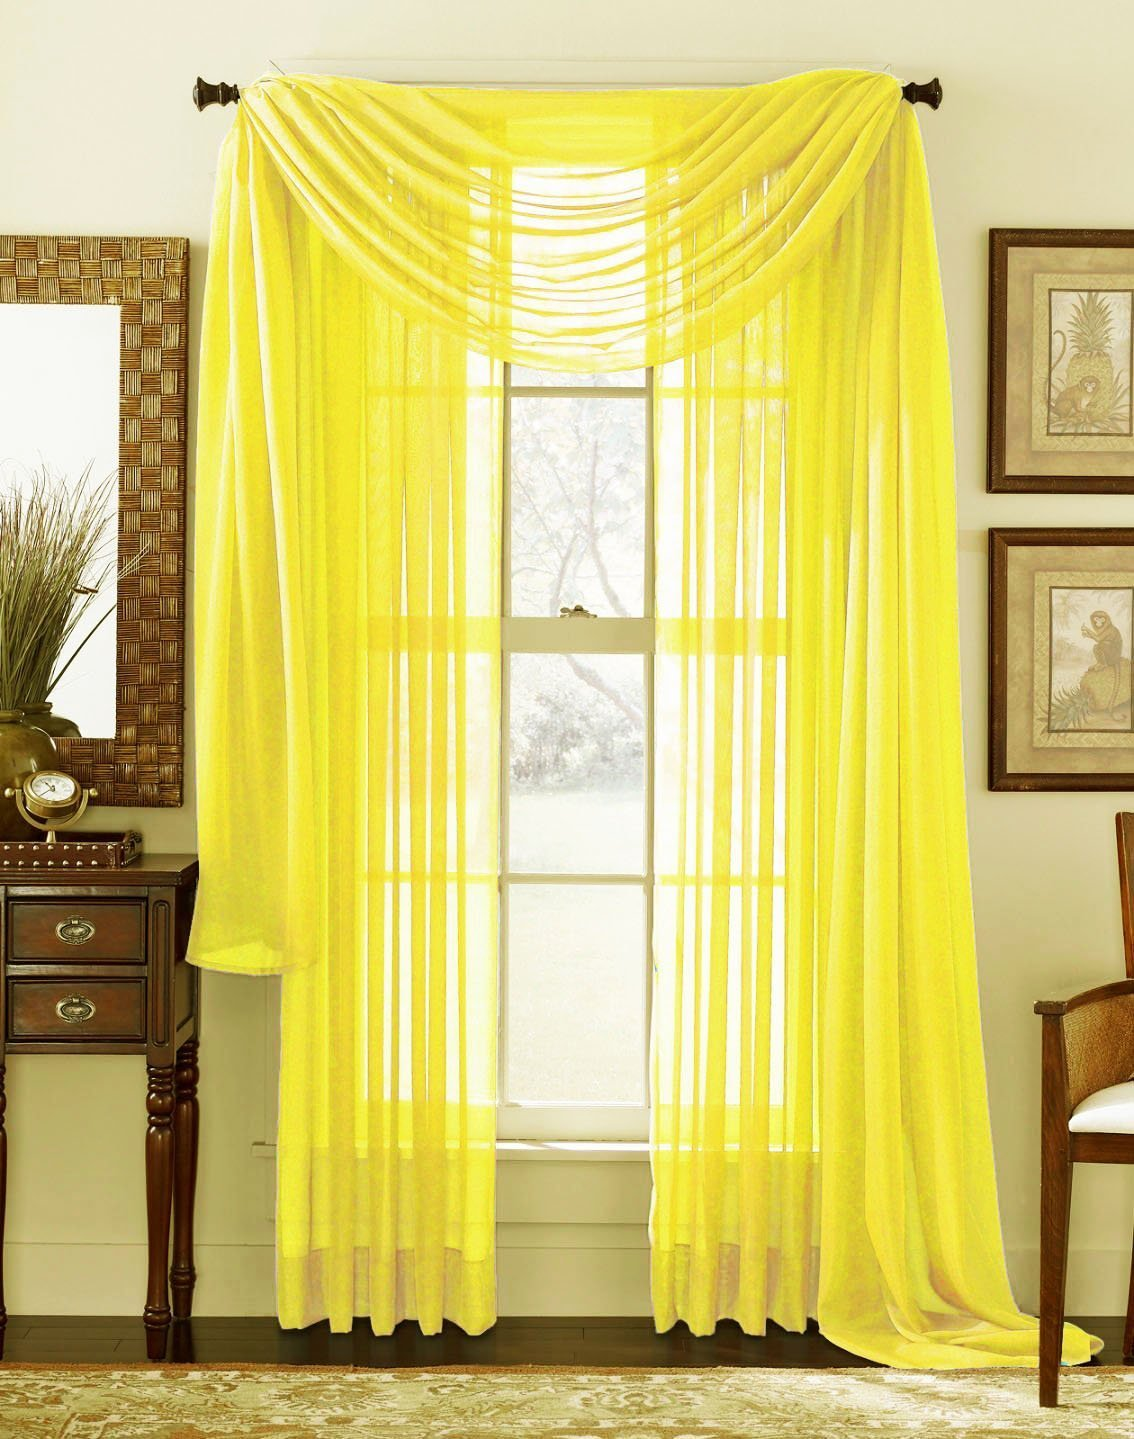 Luxury Discounts 2 Piece Solid Elegant Sheer Curtains Fully Stitched Panels Window Treatment Drape Yellow